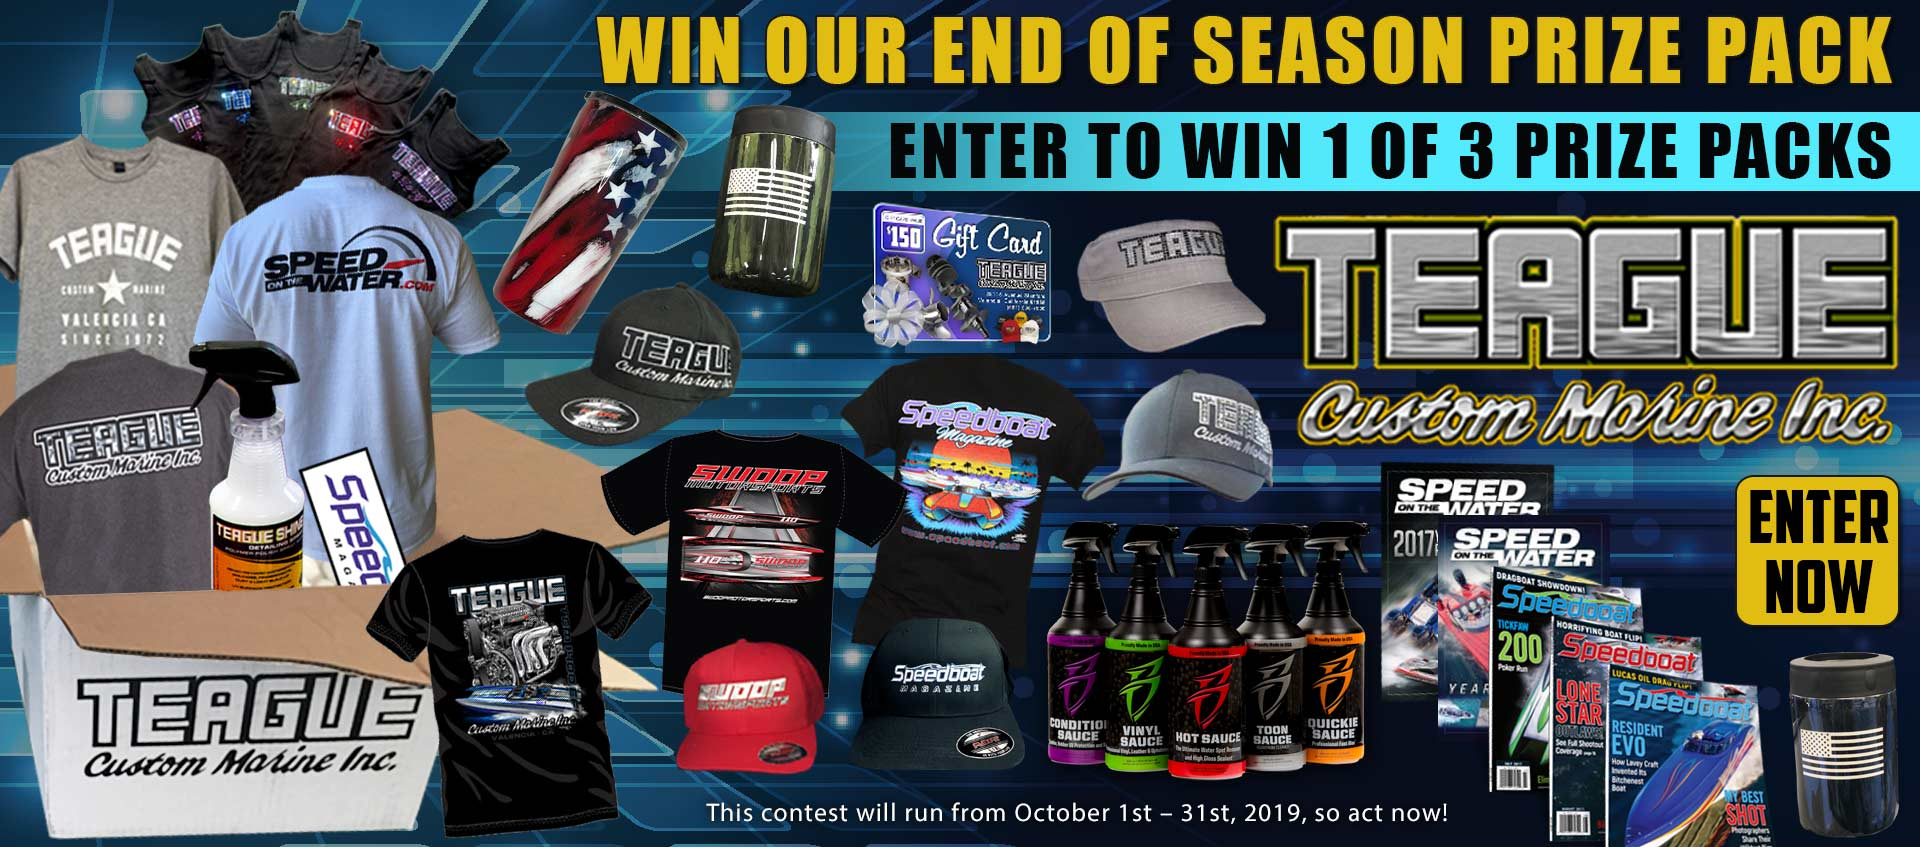 Image of our end of season prize pack giveaway, enter now!